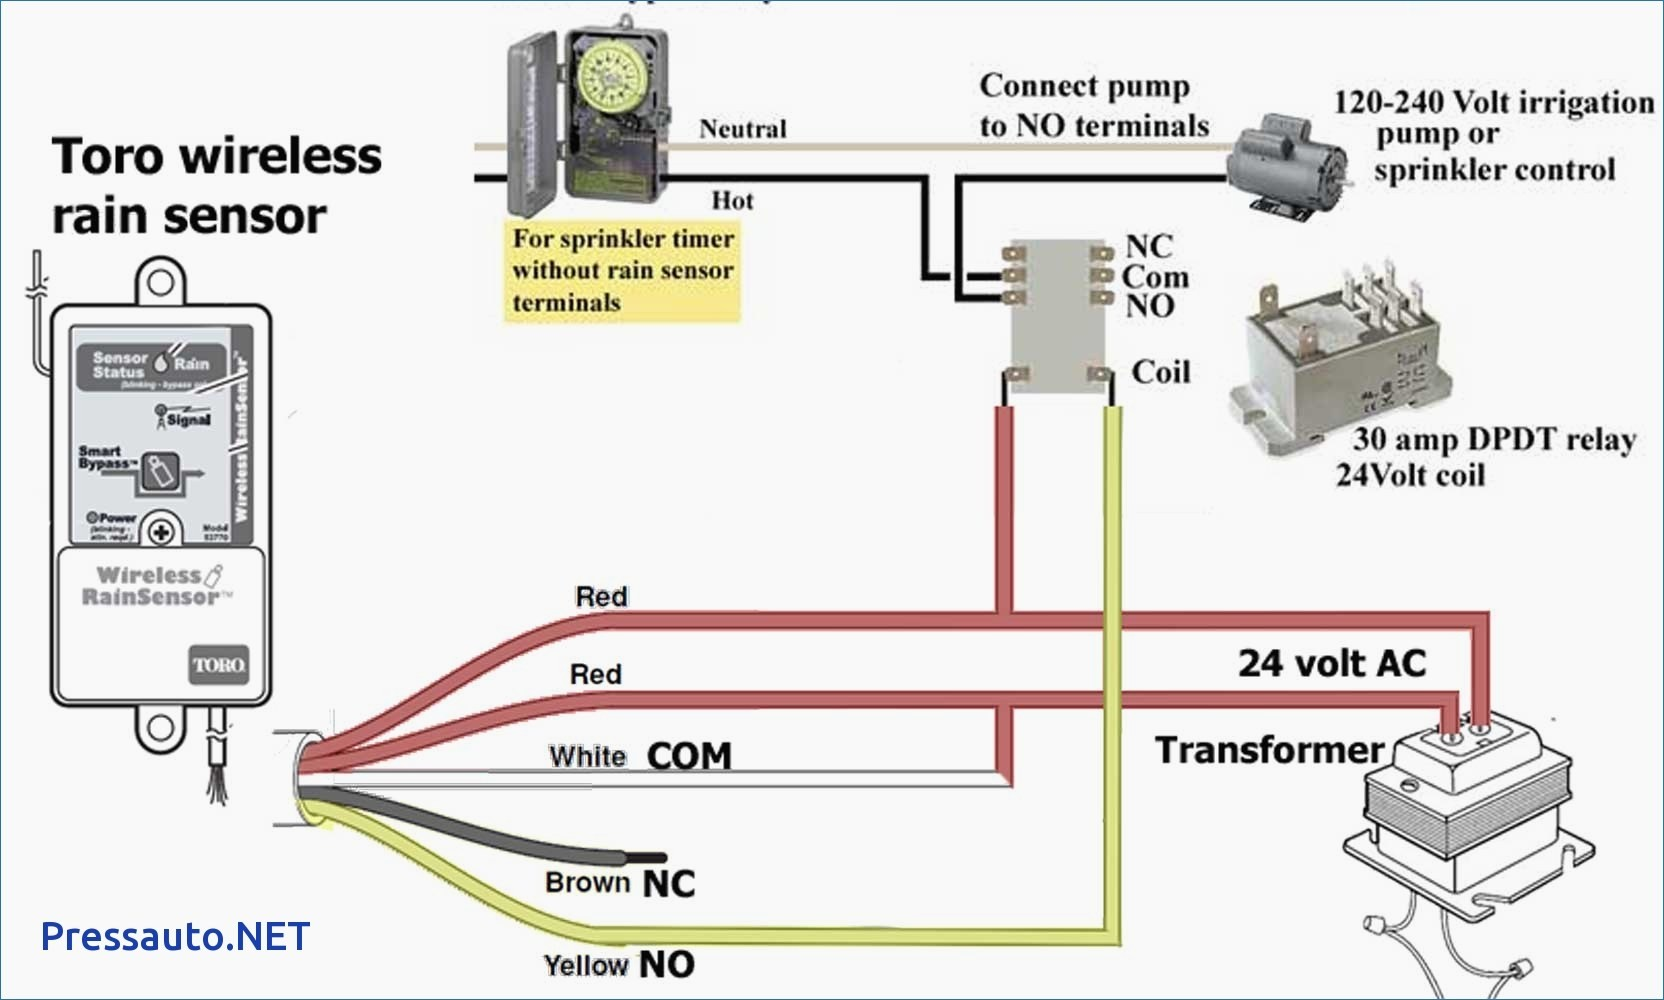 wiring diagram for 24 volt transformer example electrical circuit u2022 rh labs labs4 fun Step-Up Transformer Wiring Diagrams 24V Transformer Wiring Diagram